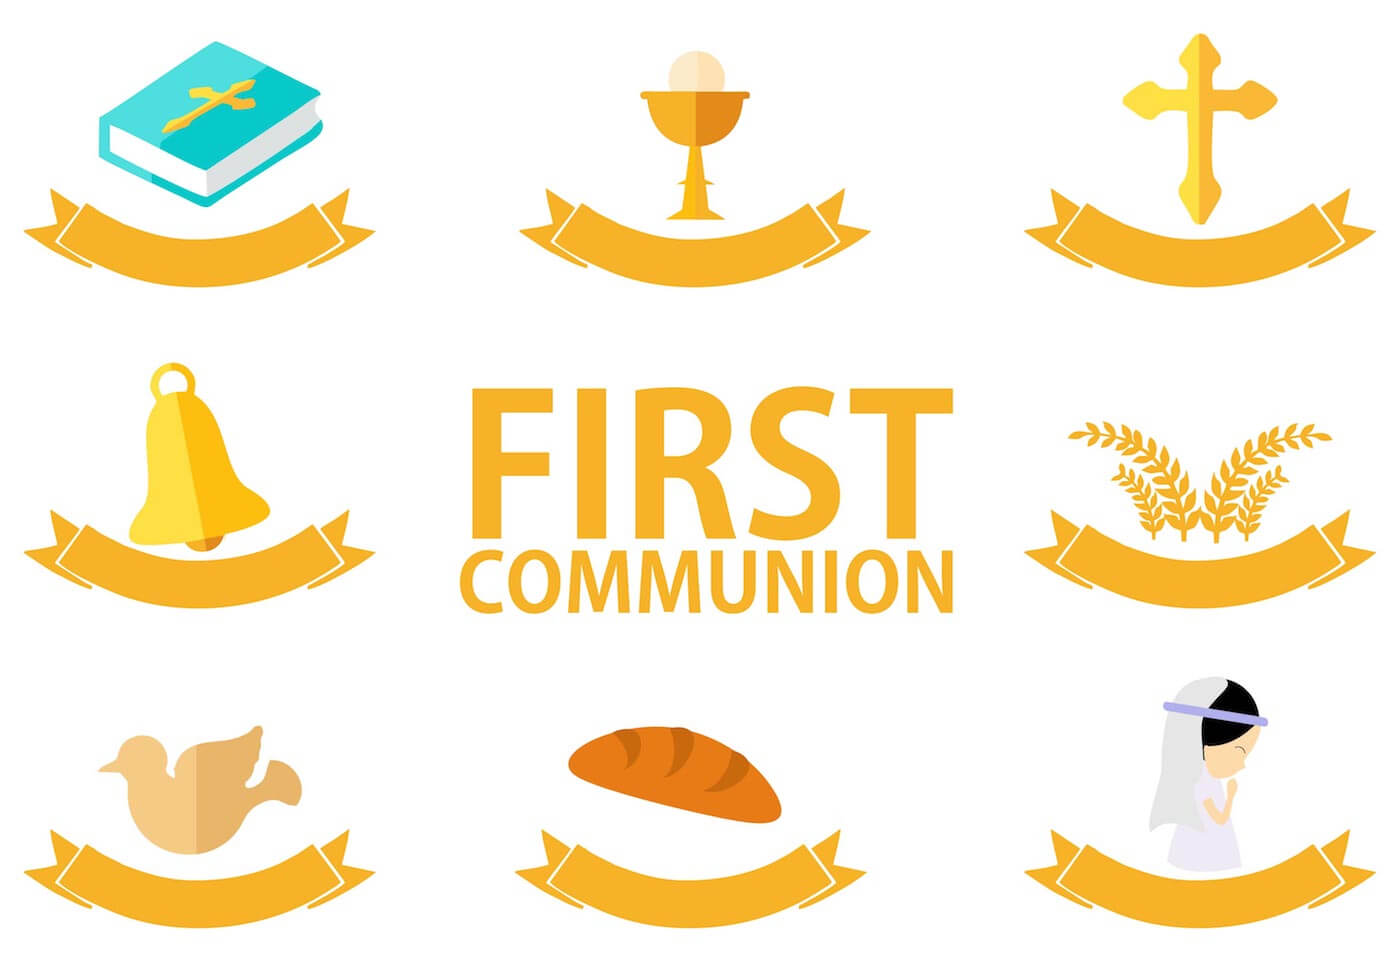 First Communion Template Free Vector Art – (25 Free Downloads) Throughout Free Printable First Communion Banner Templates